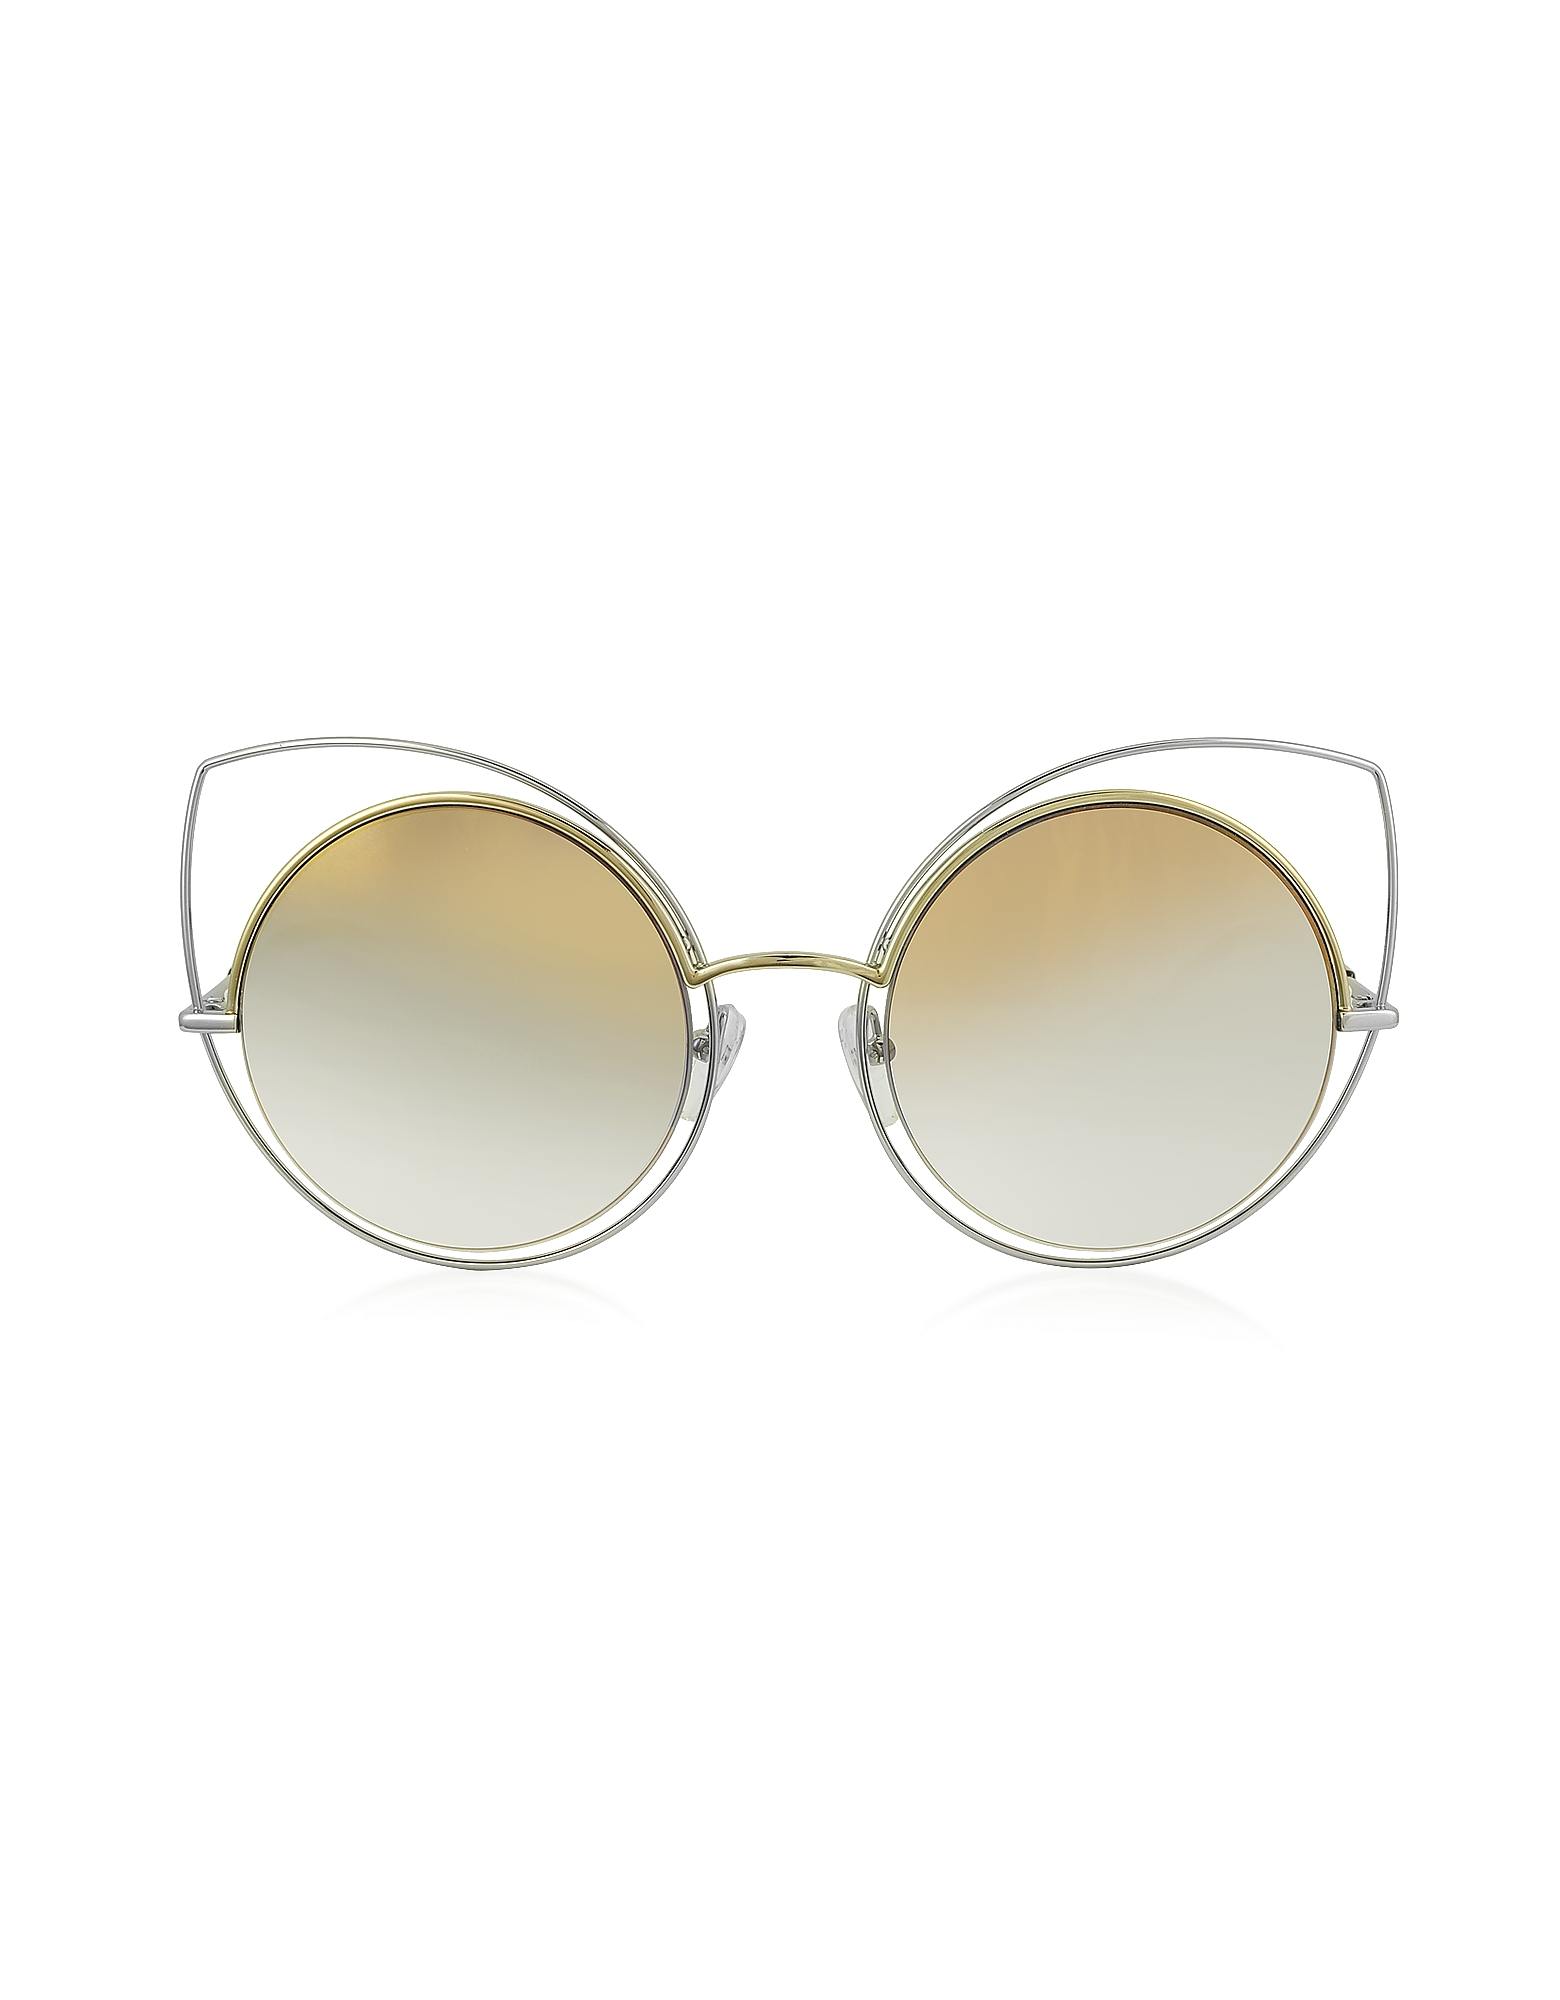 Marc Jacobs Designer Sunglasses, MARC 10/S TWMFQ Gold & Silver Metal Cat Eye Women's Sunglasses